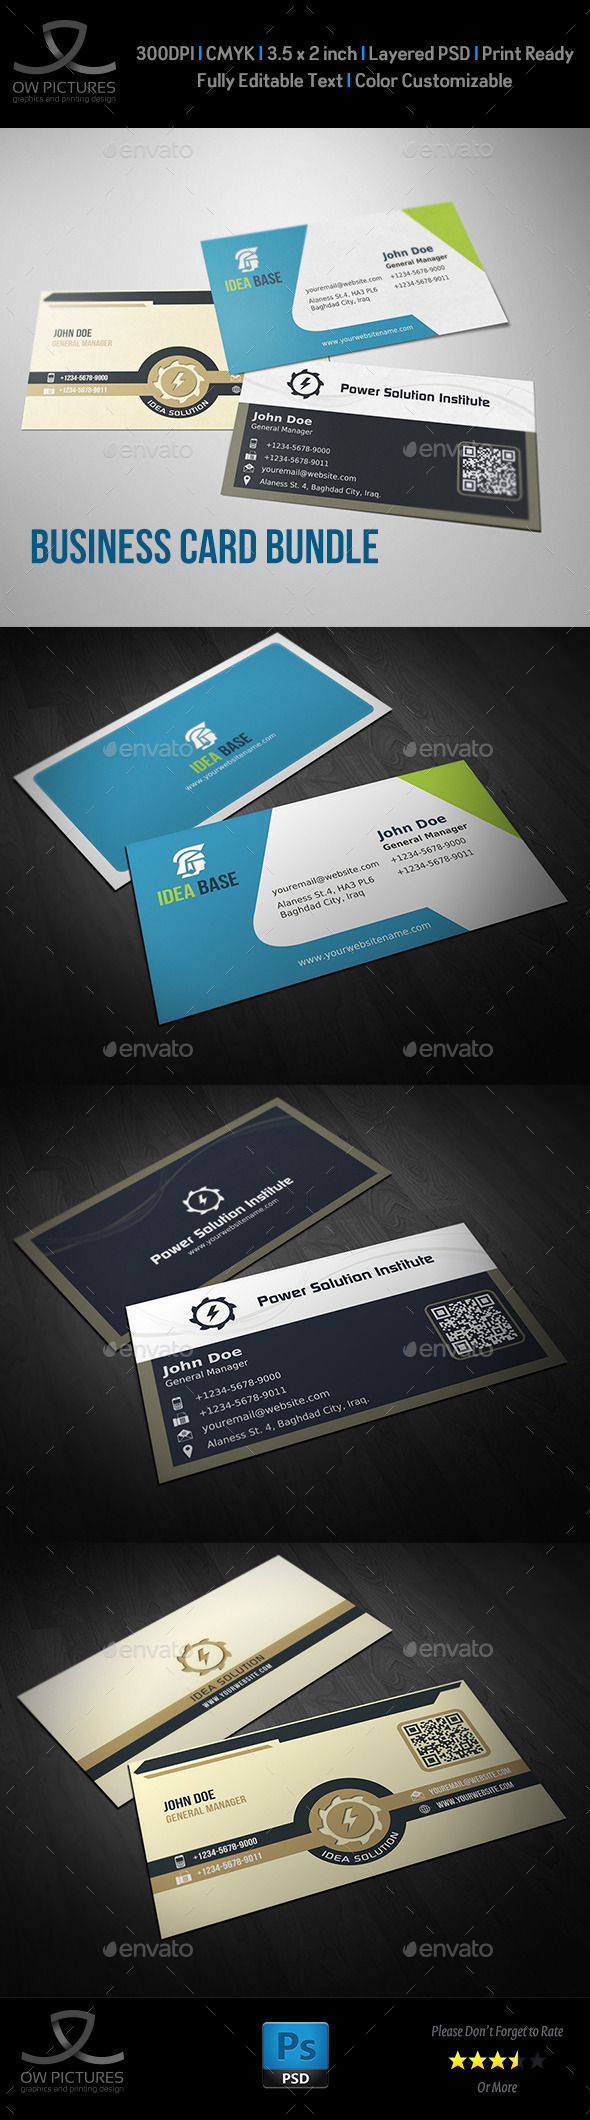 Corporate Business Card Bundle Vol.7 - Business Cards Print Templates